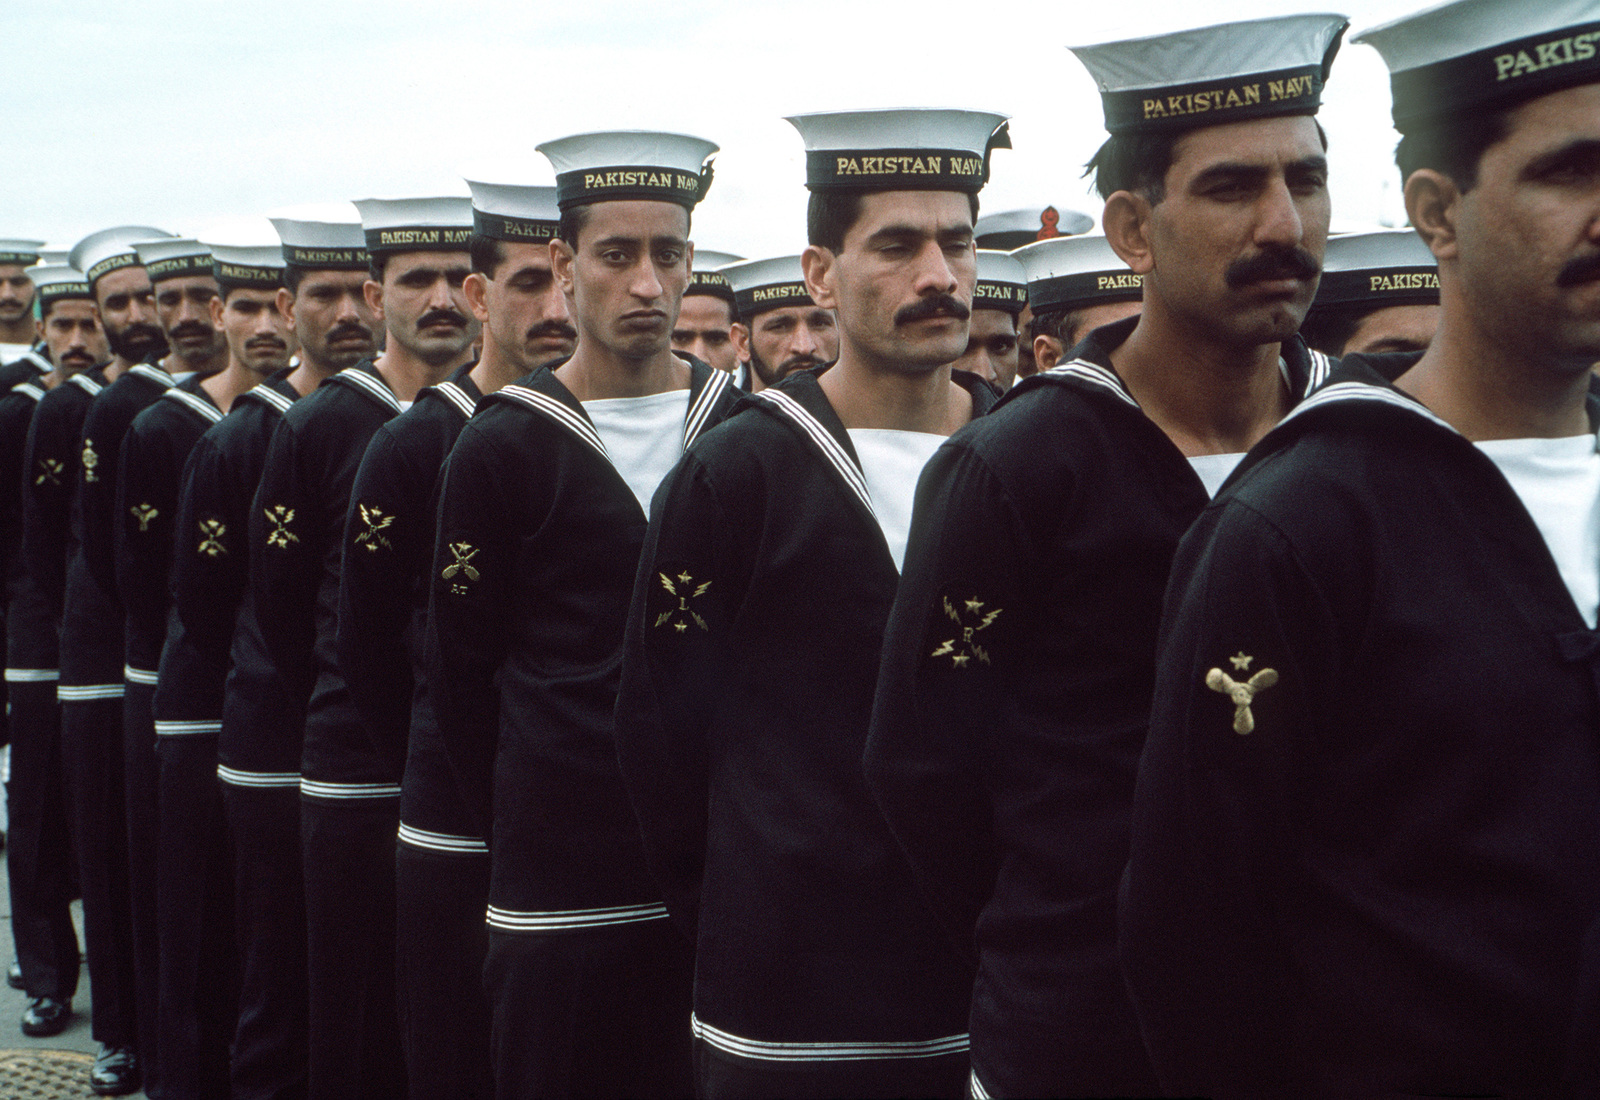 Pakistani Sailors stand in formation during the commissioning ceremony by which the former Guided Missile Frigate USS BROOKE (FFG 1) and the former Frigate USS O'CALLAHAN (FF 1051) are transferred to the Pakistani navy.  The BROOKE is being commissioned PNS KHAIBAR (D 163) while the O'CALLAHAN becomes PNS ASLAT (F 265)